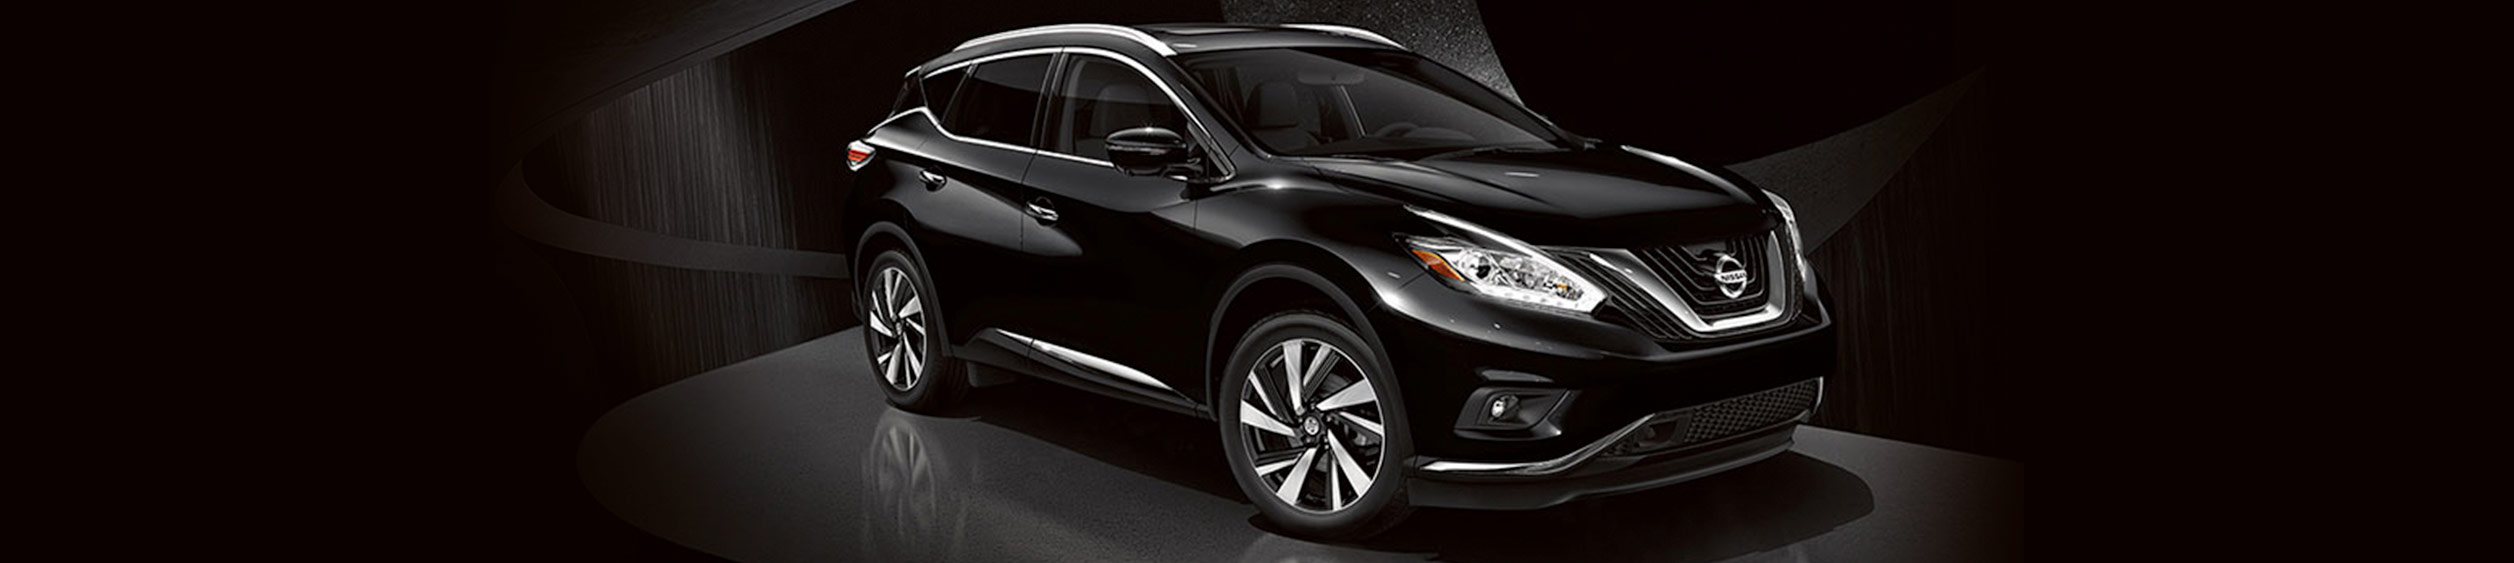 Nissan Murano on a dark background